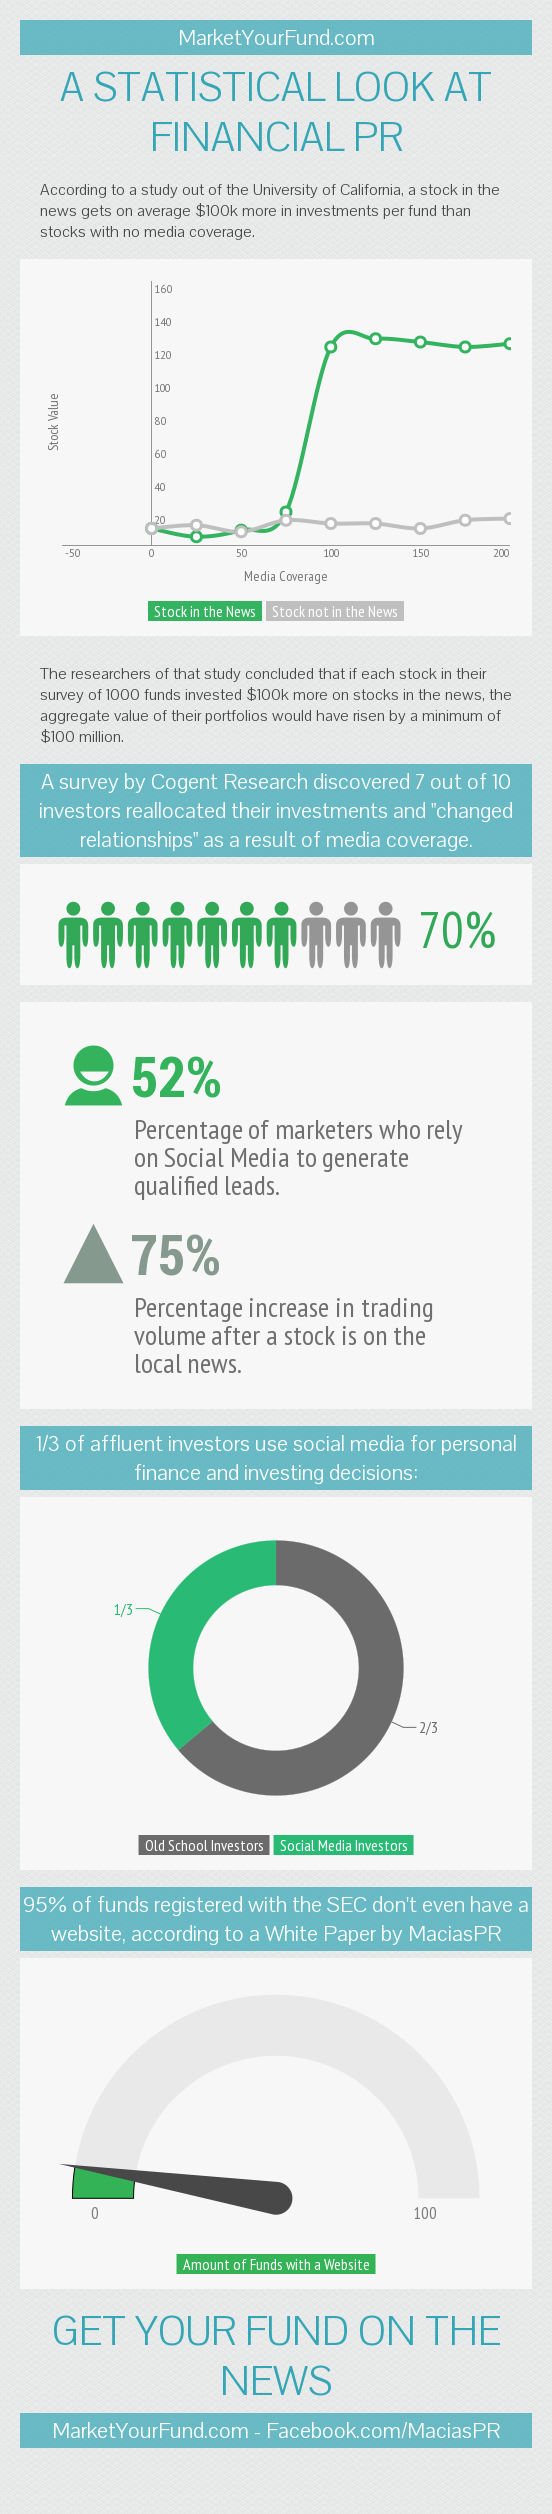 infographic on benefits of financial pr